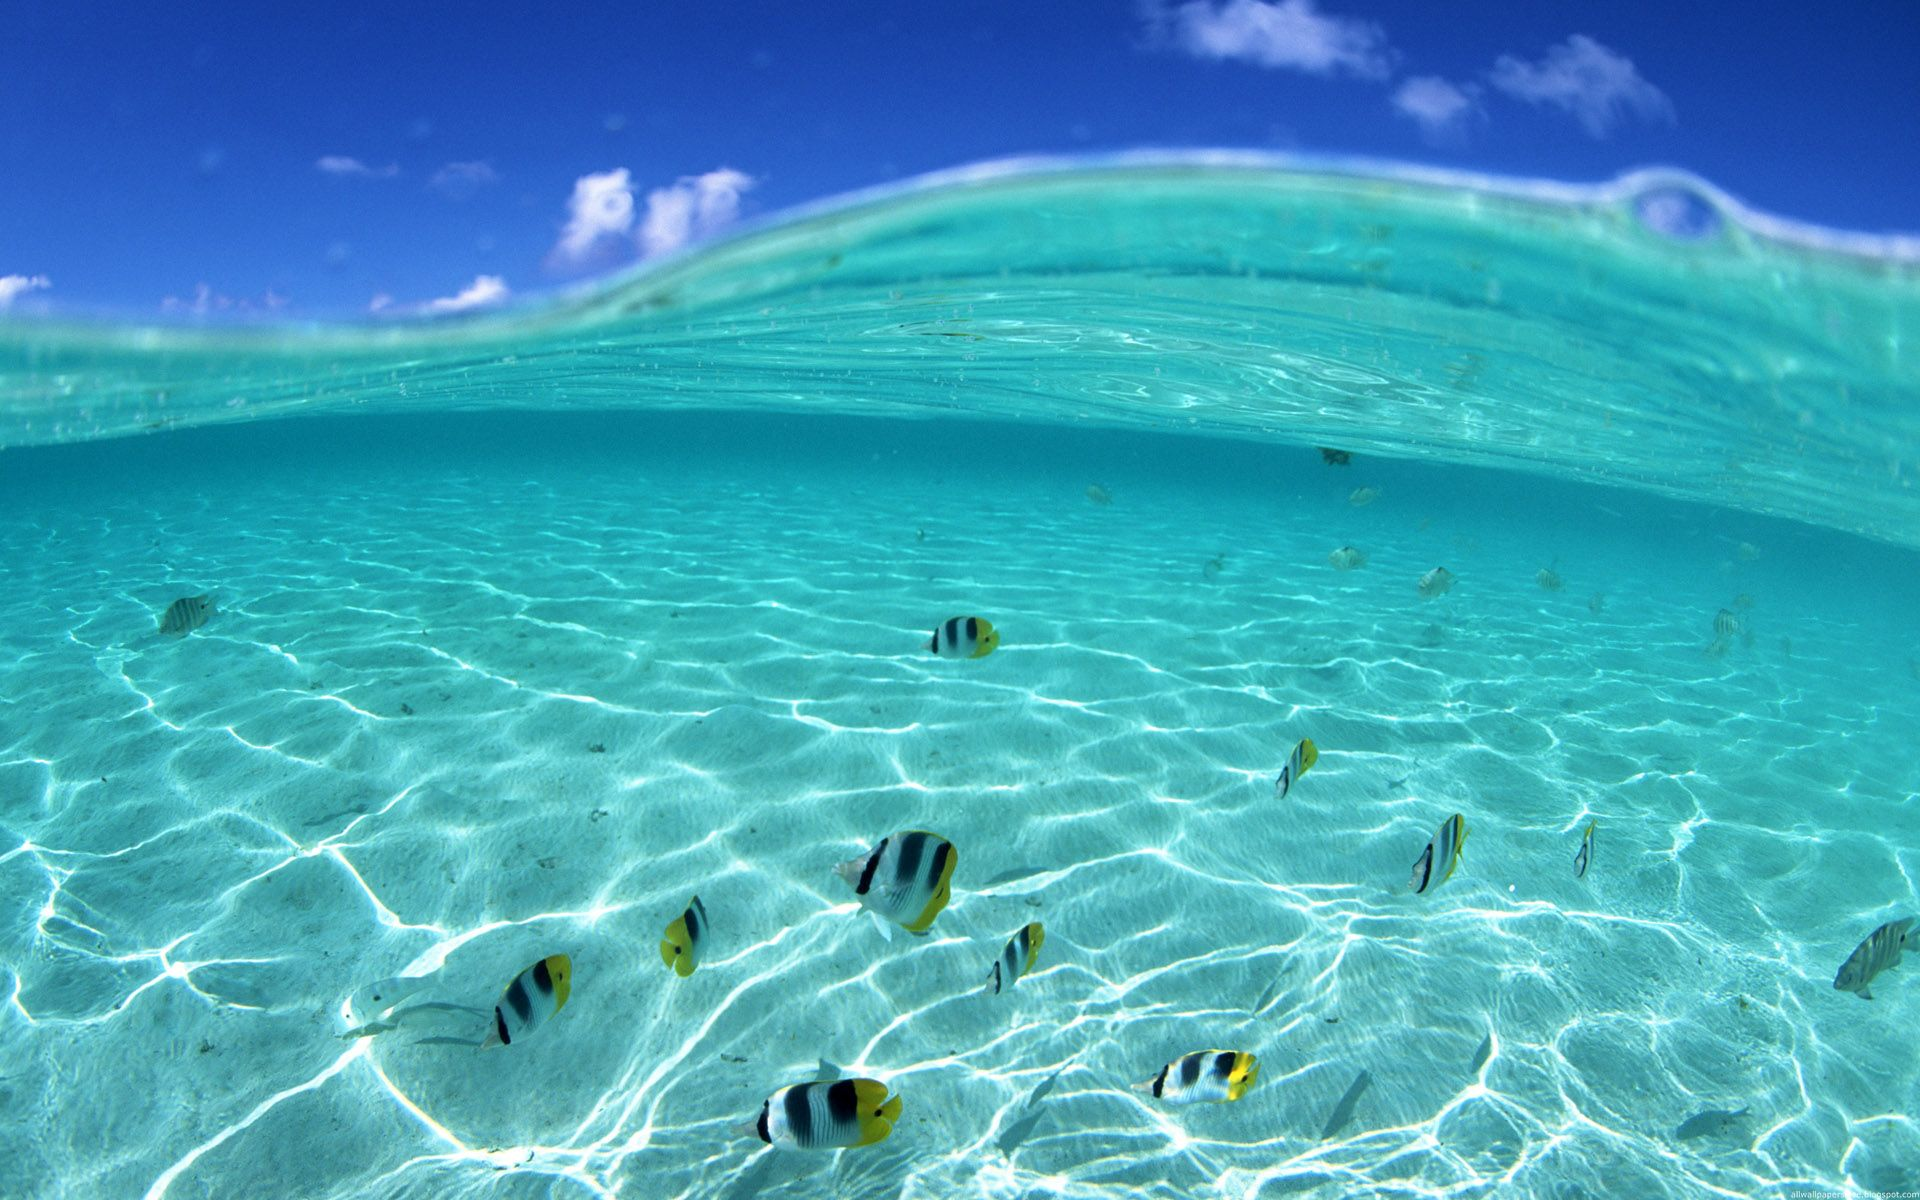 Wallpaper 1 of 1   Light Blue Beach Water Fish Swimming HD Wallpaper 1920x1200